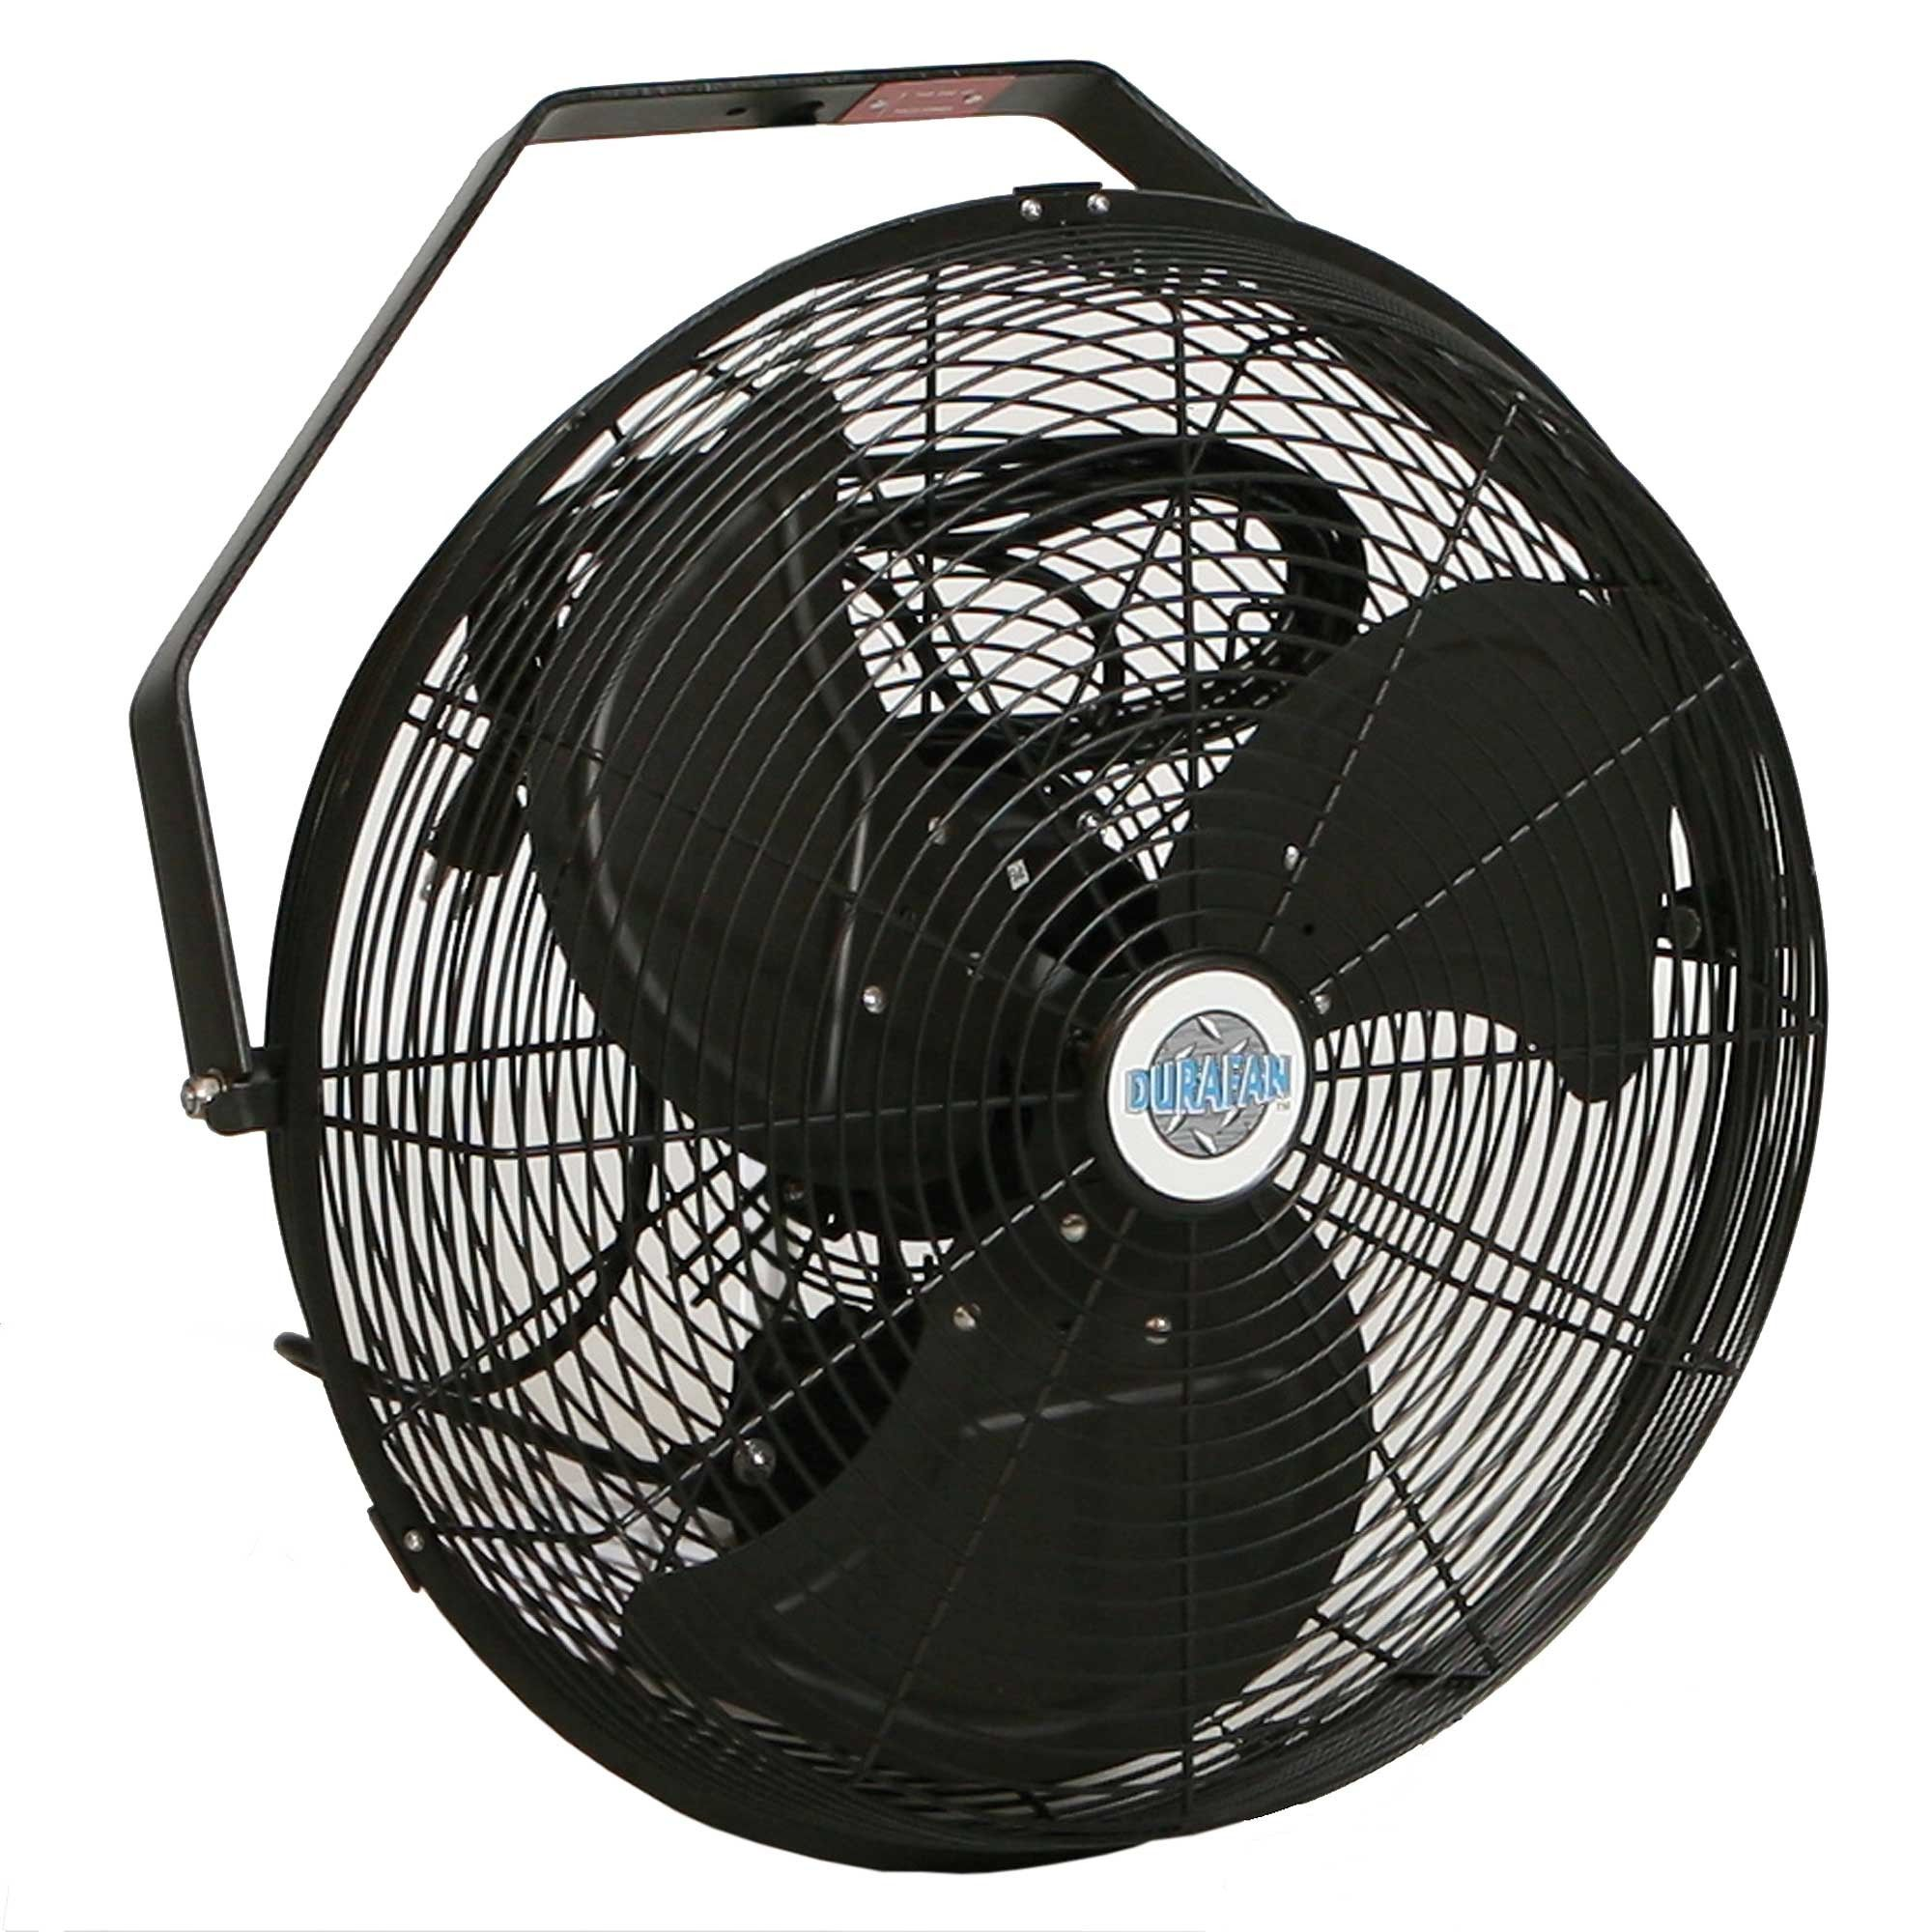 Durafan Indoor Outdoor Wall Mount Fan 14 Non Oscillating Black Wall Mounted Fan Outdoor Fans Patio Outdoor Wall Fan